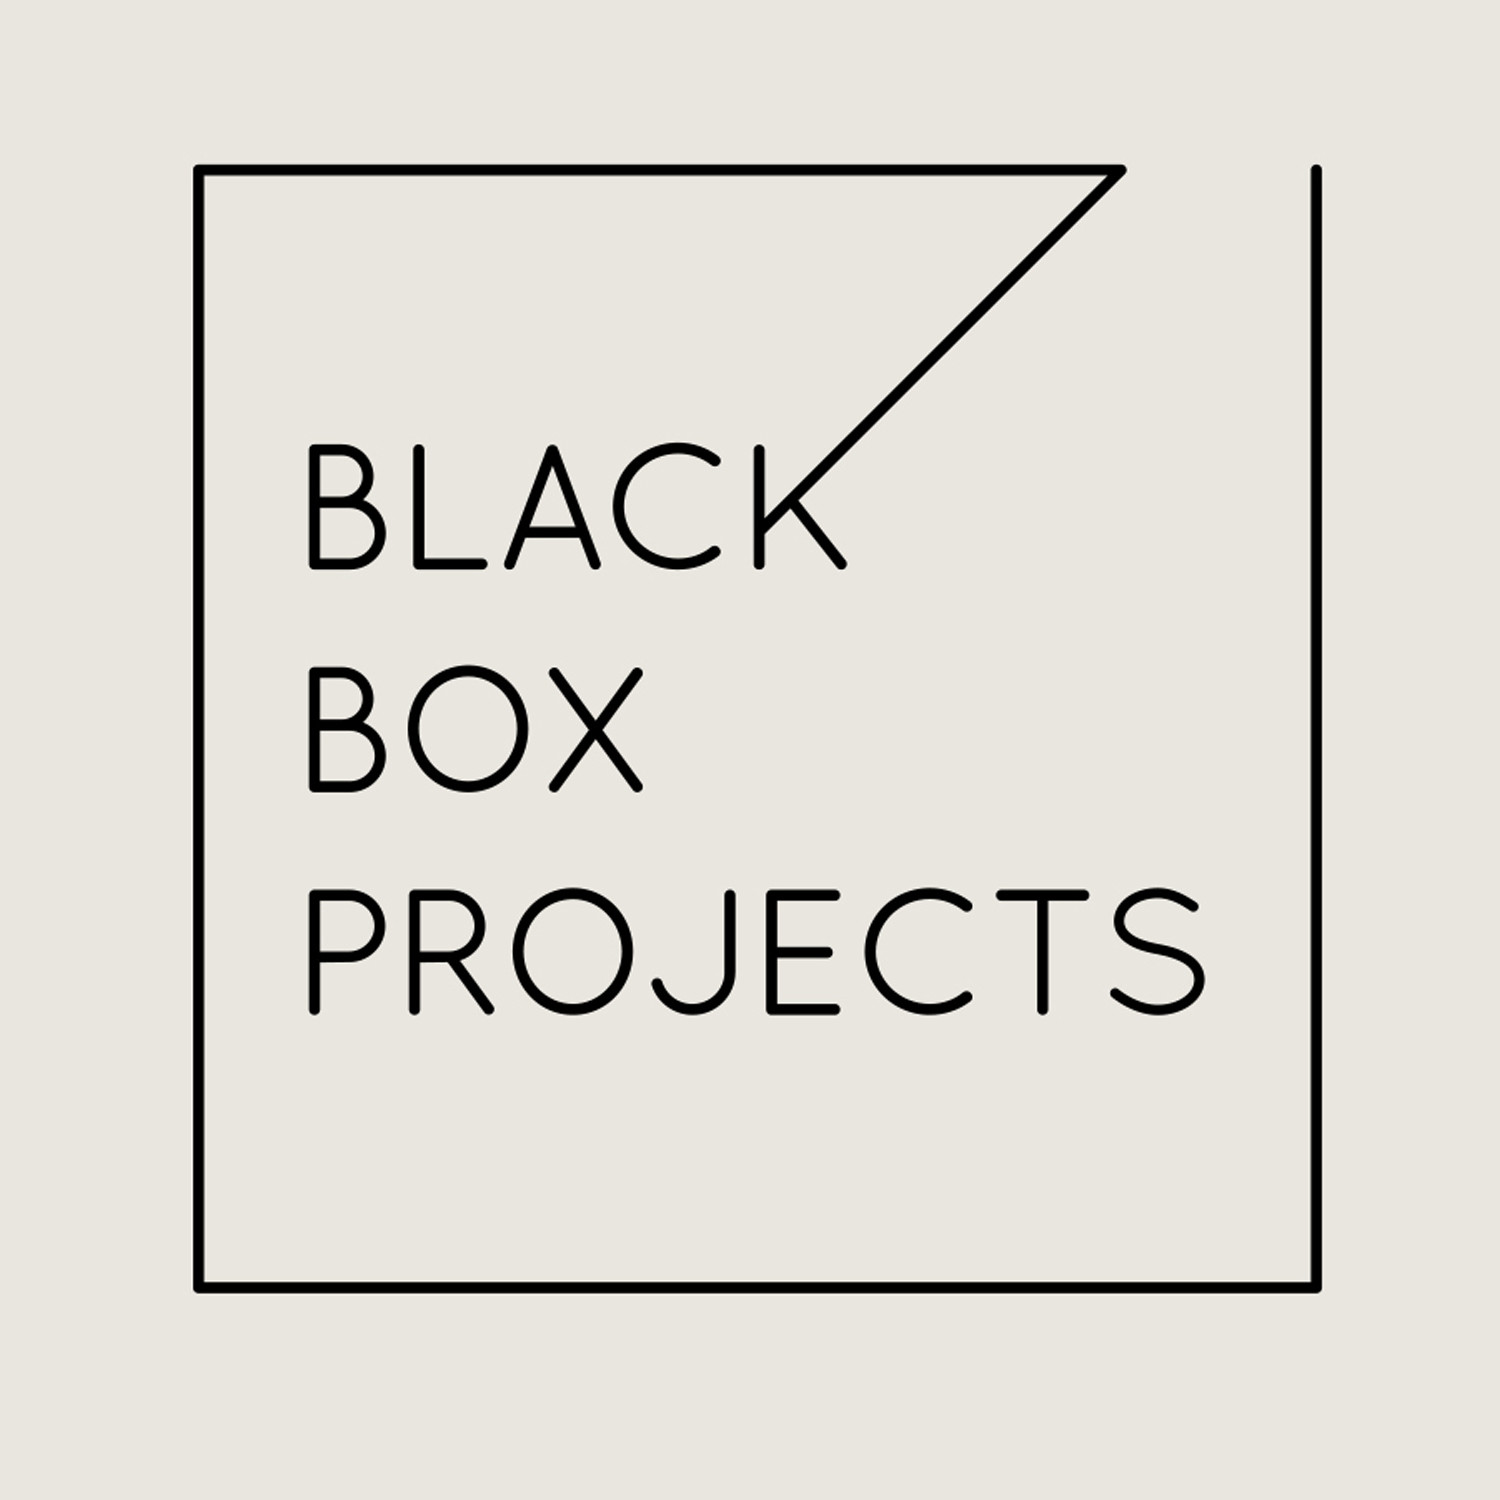 We are delighted to be involved with Black Box Projects, a new art gallery specialising in contemporary photography and art which is created using photographic materials. We have worked closely with their team and artists for their upcoming launch exhibition in Soho this March, producing a mix of bespoke frames, fine art Giclée prints and […]